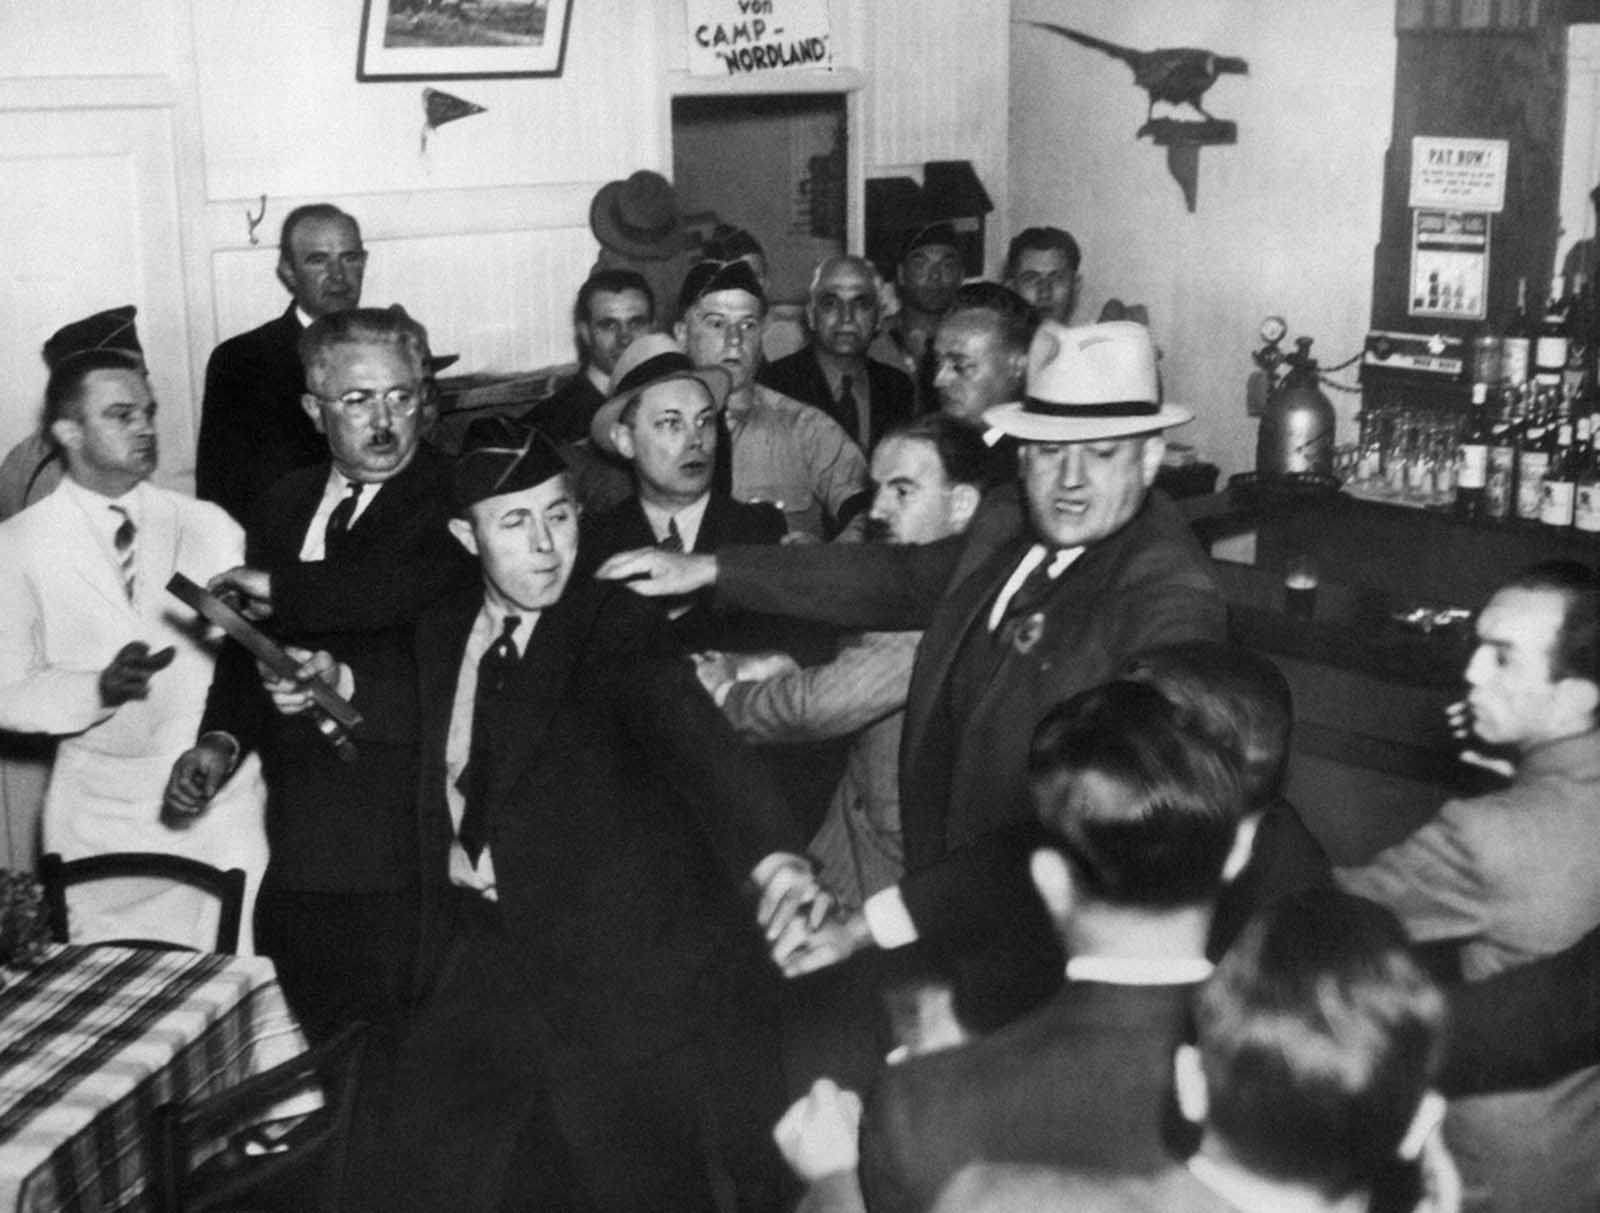 "An anti-Nazi crowd rushed the bar entrance of the German-American Bund Hall in Union City, New Jersey, on October 2, 1938 where Fritz Kuhn, bunds-fuehrer, was to make a ""victory"" speech celebrating Hitler's occupation of Czechoslovakia. Bund members, including one with a belt as weapon drove the protesters out, but the meeting was disrupted."